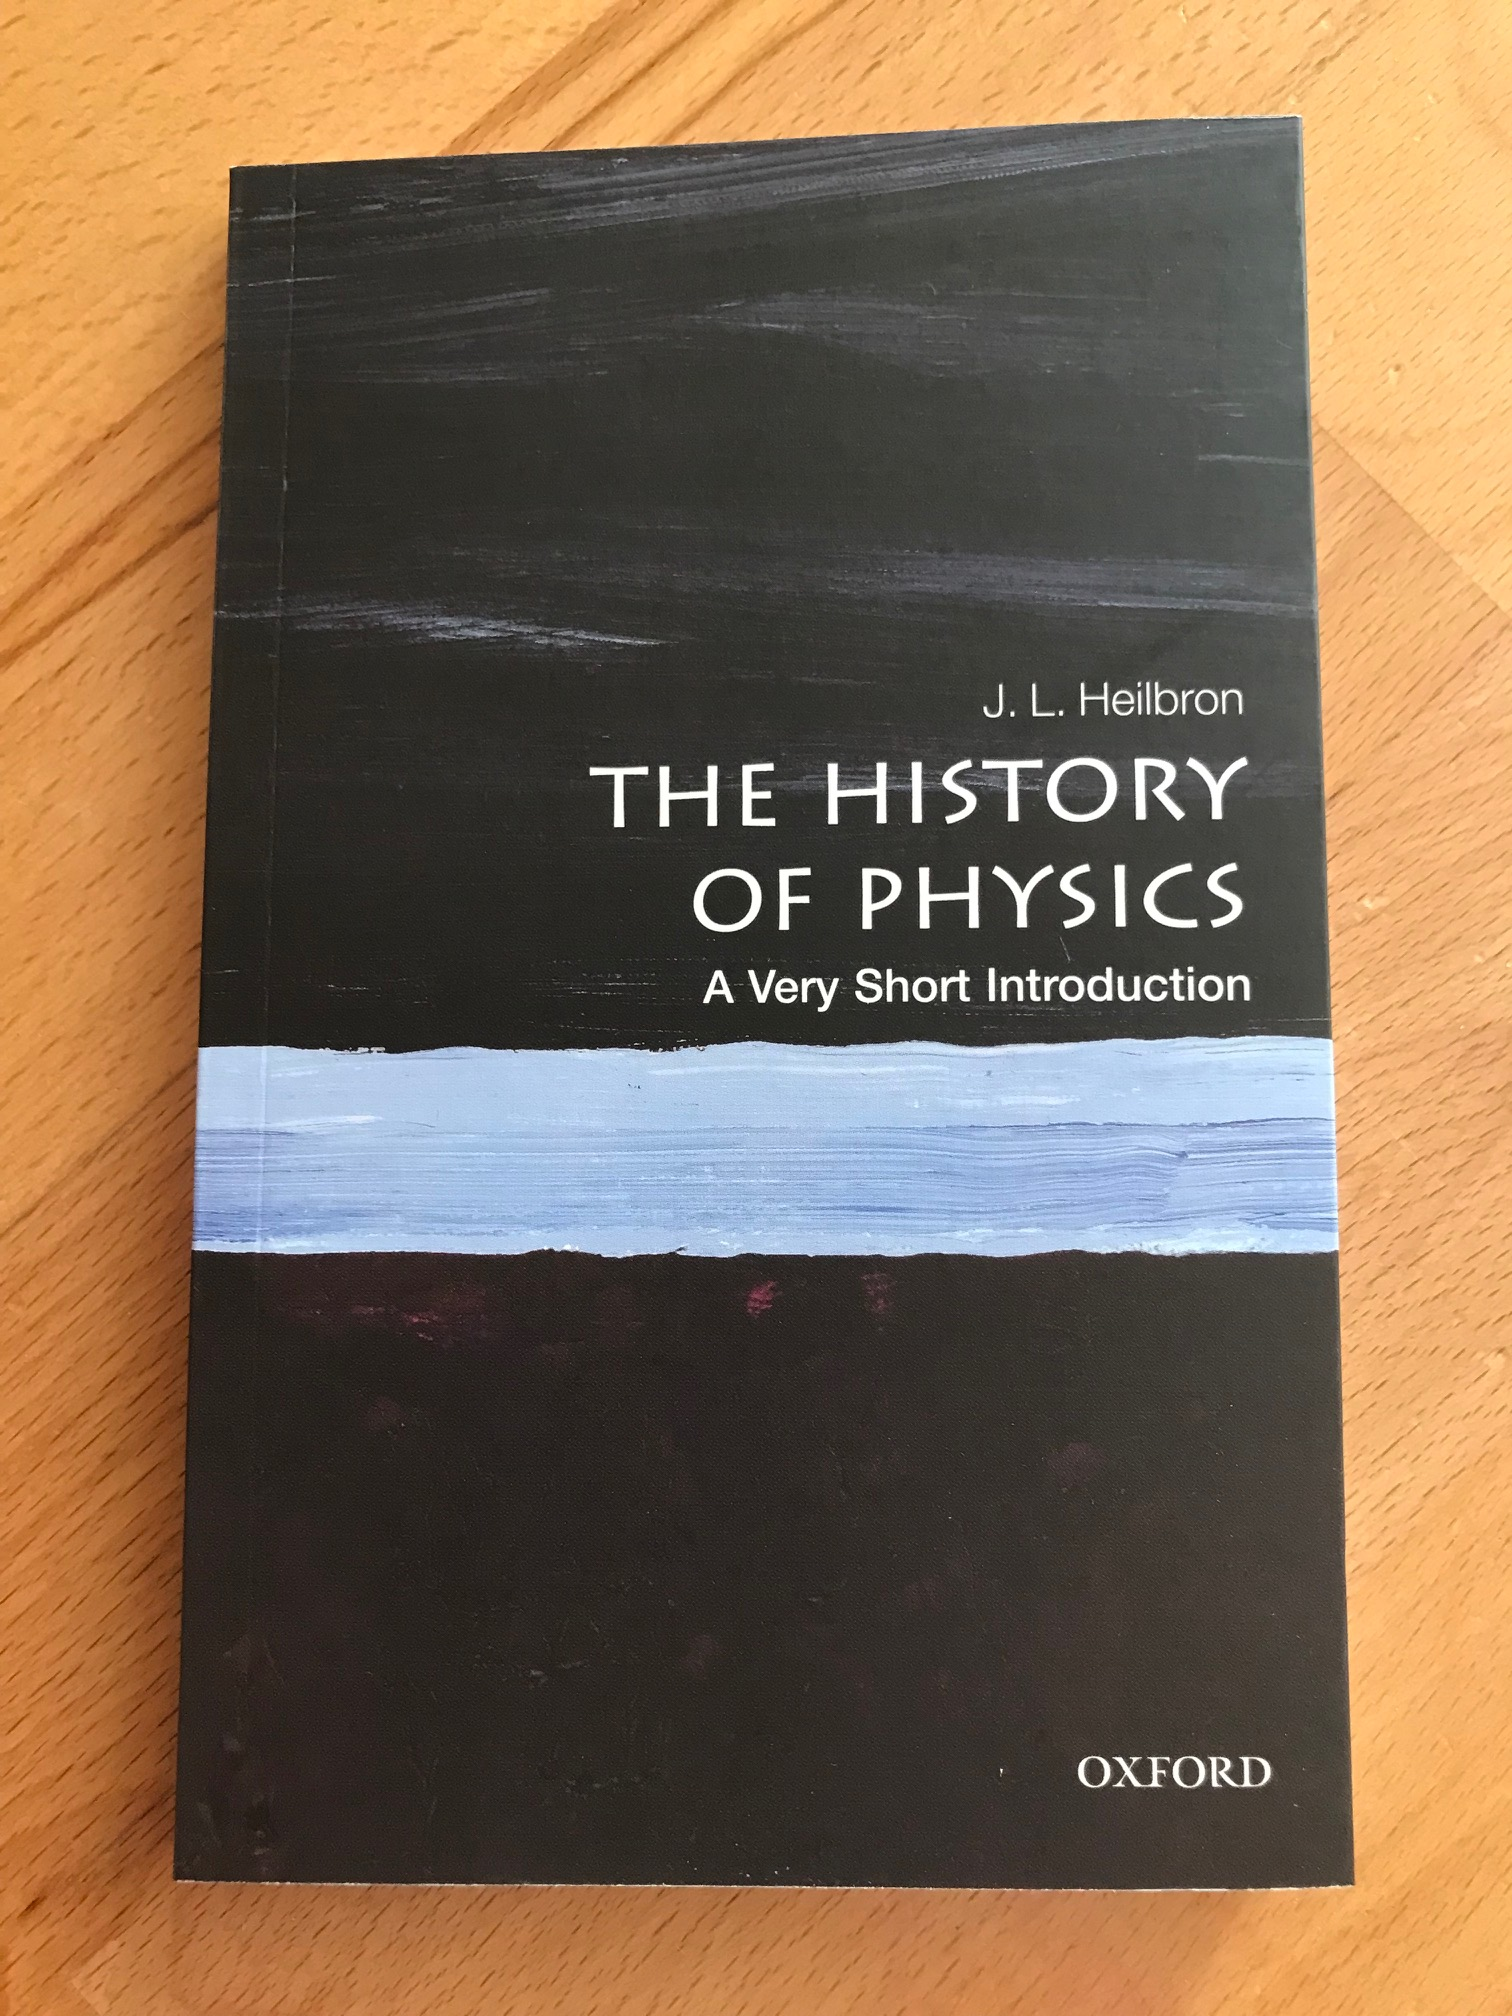 the origin and history of physics We invite you to explore this history of particle physics with a focus on the scientists and thinkers who helped shape the field of particle physics.